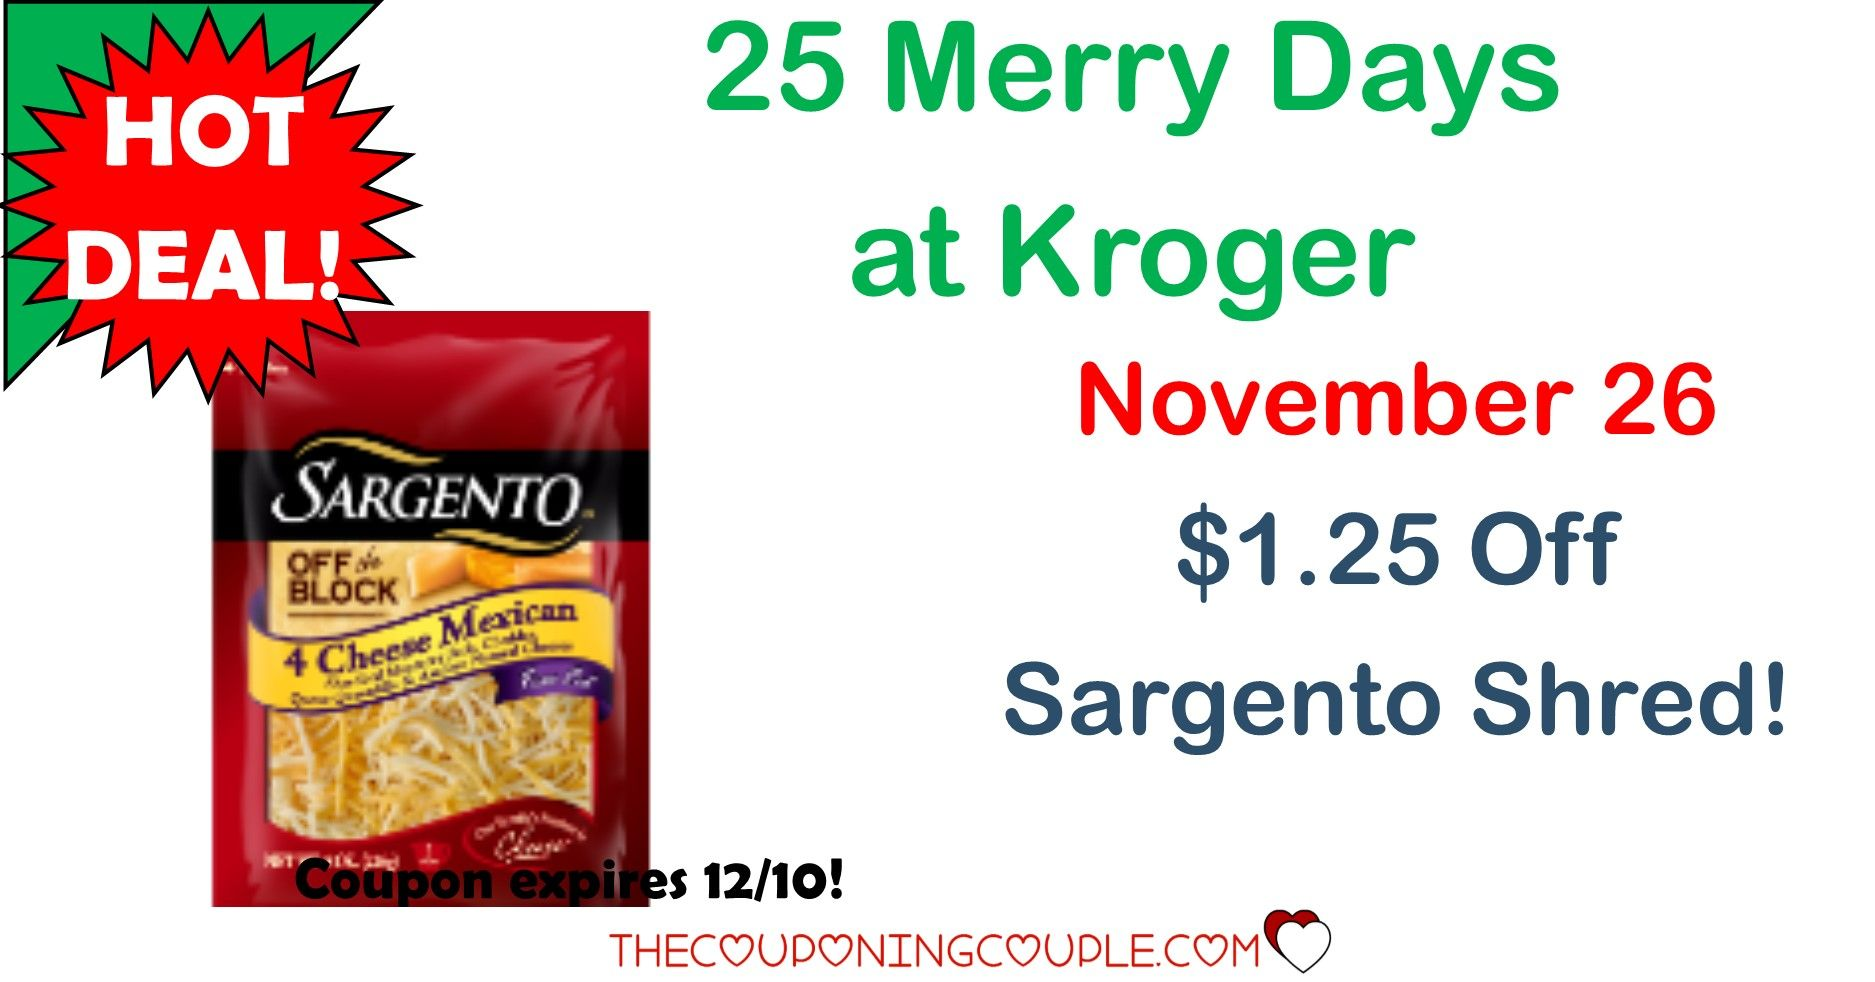 25 Merry Days of Kroger 11/26~ $1.25 Off Sargento Shred | Store ads ...